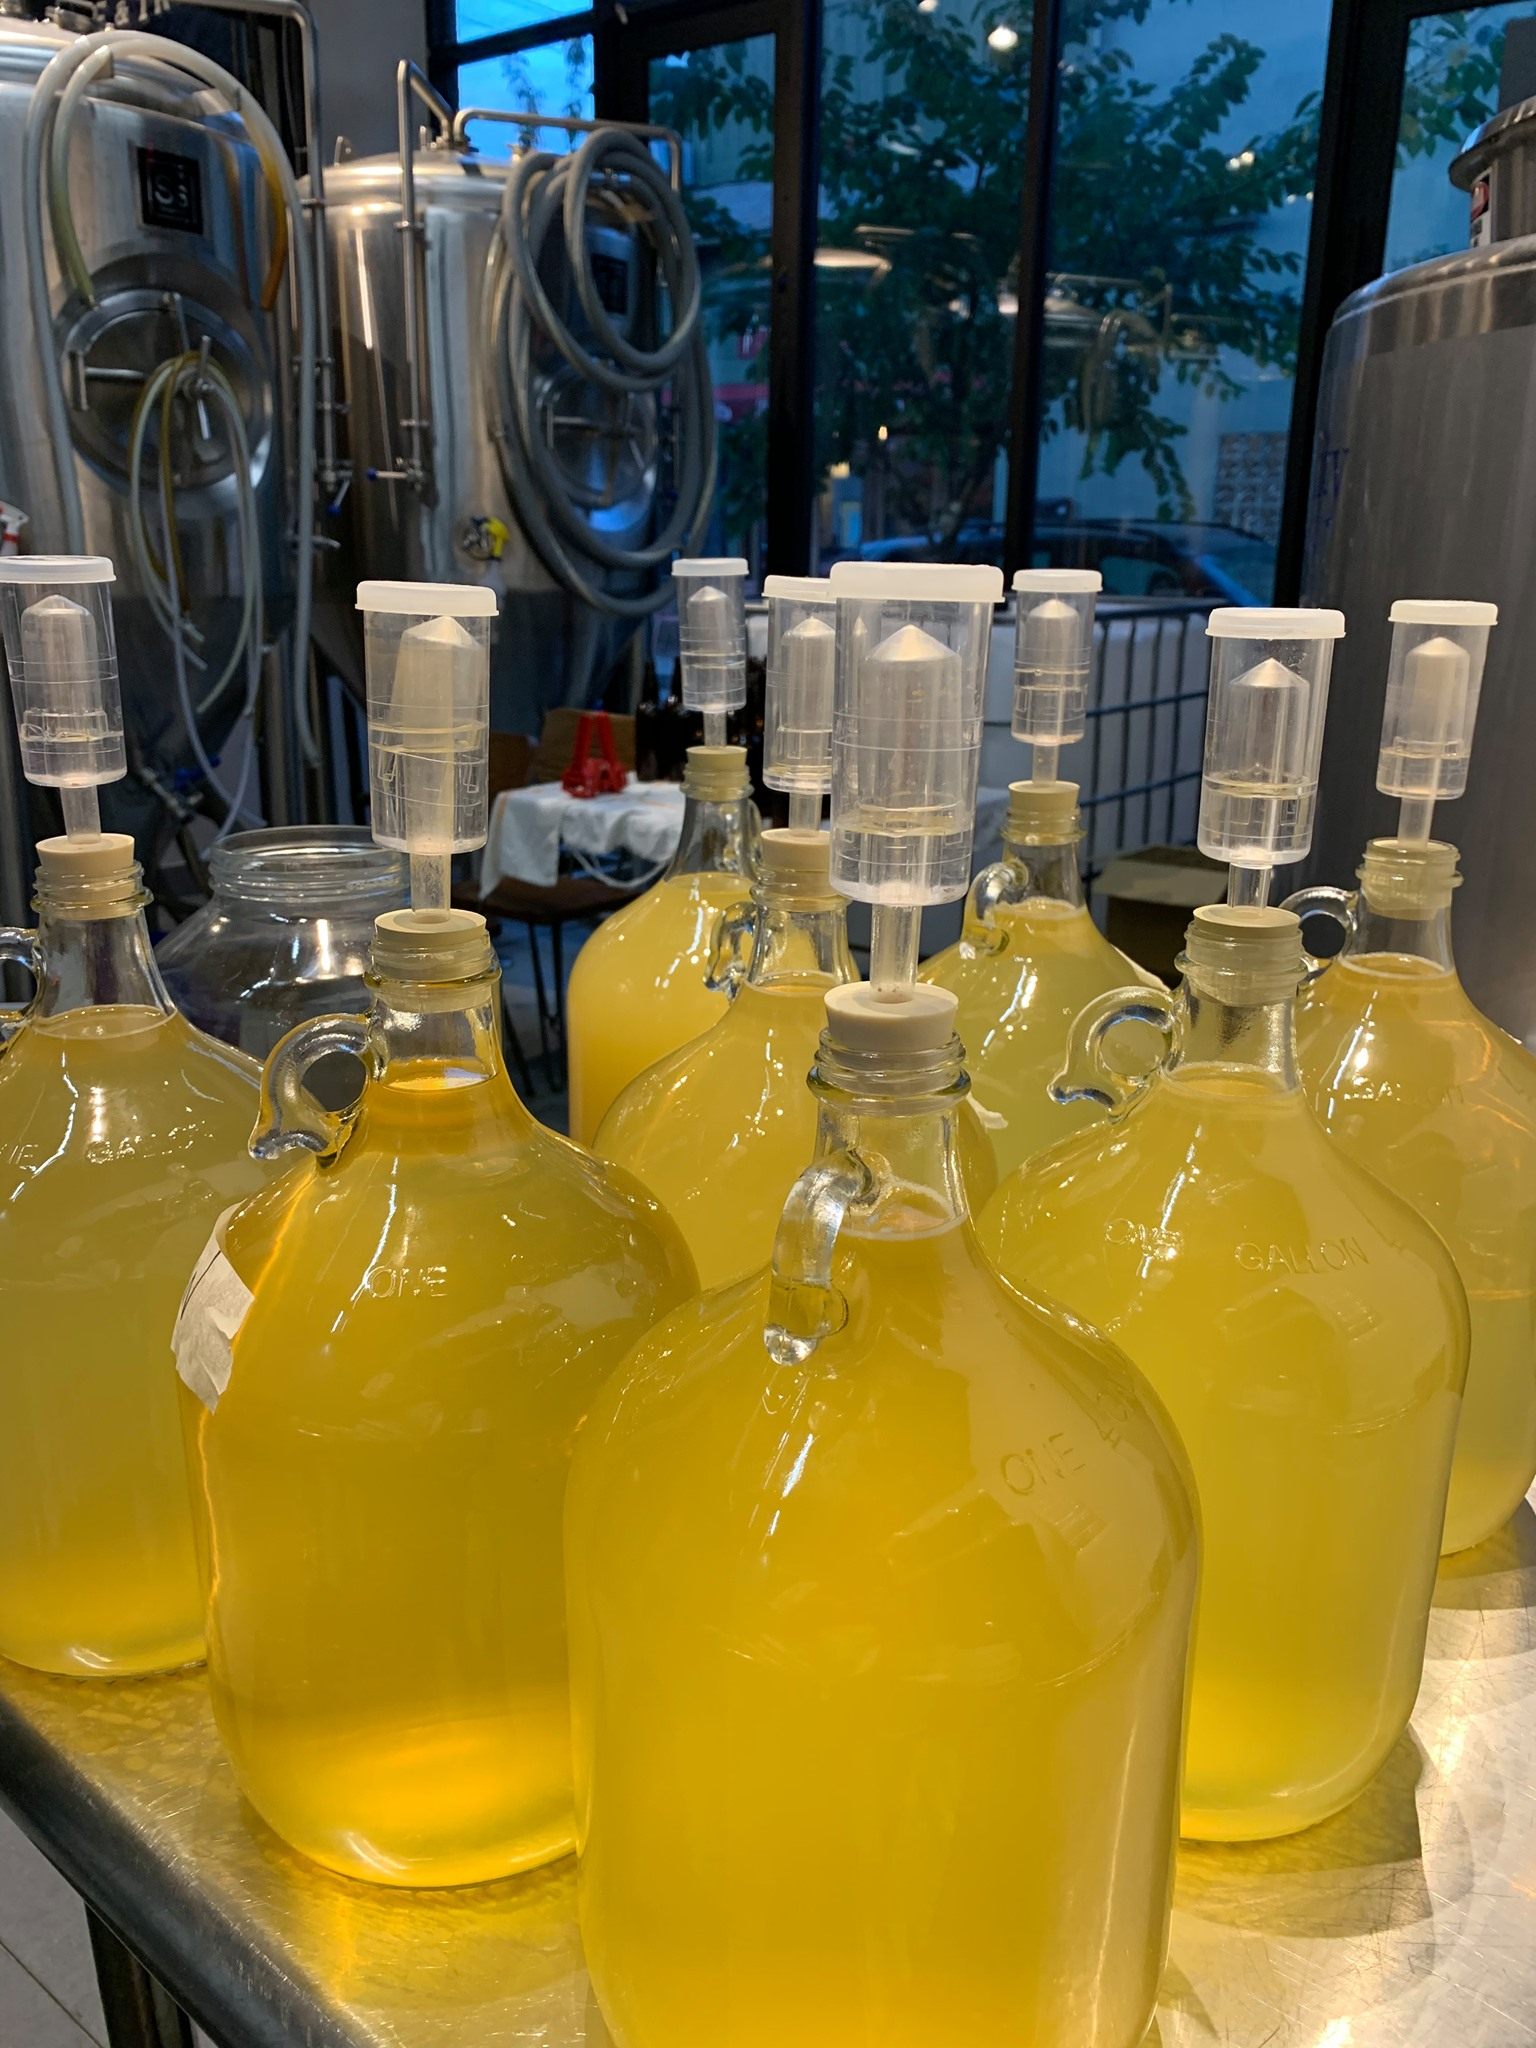 Winter Cider Making Course